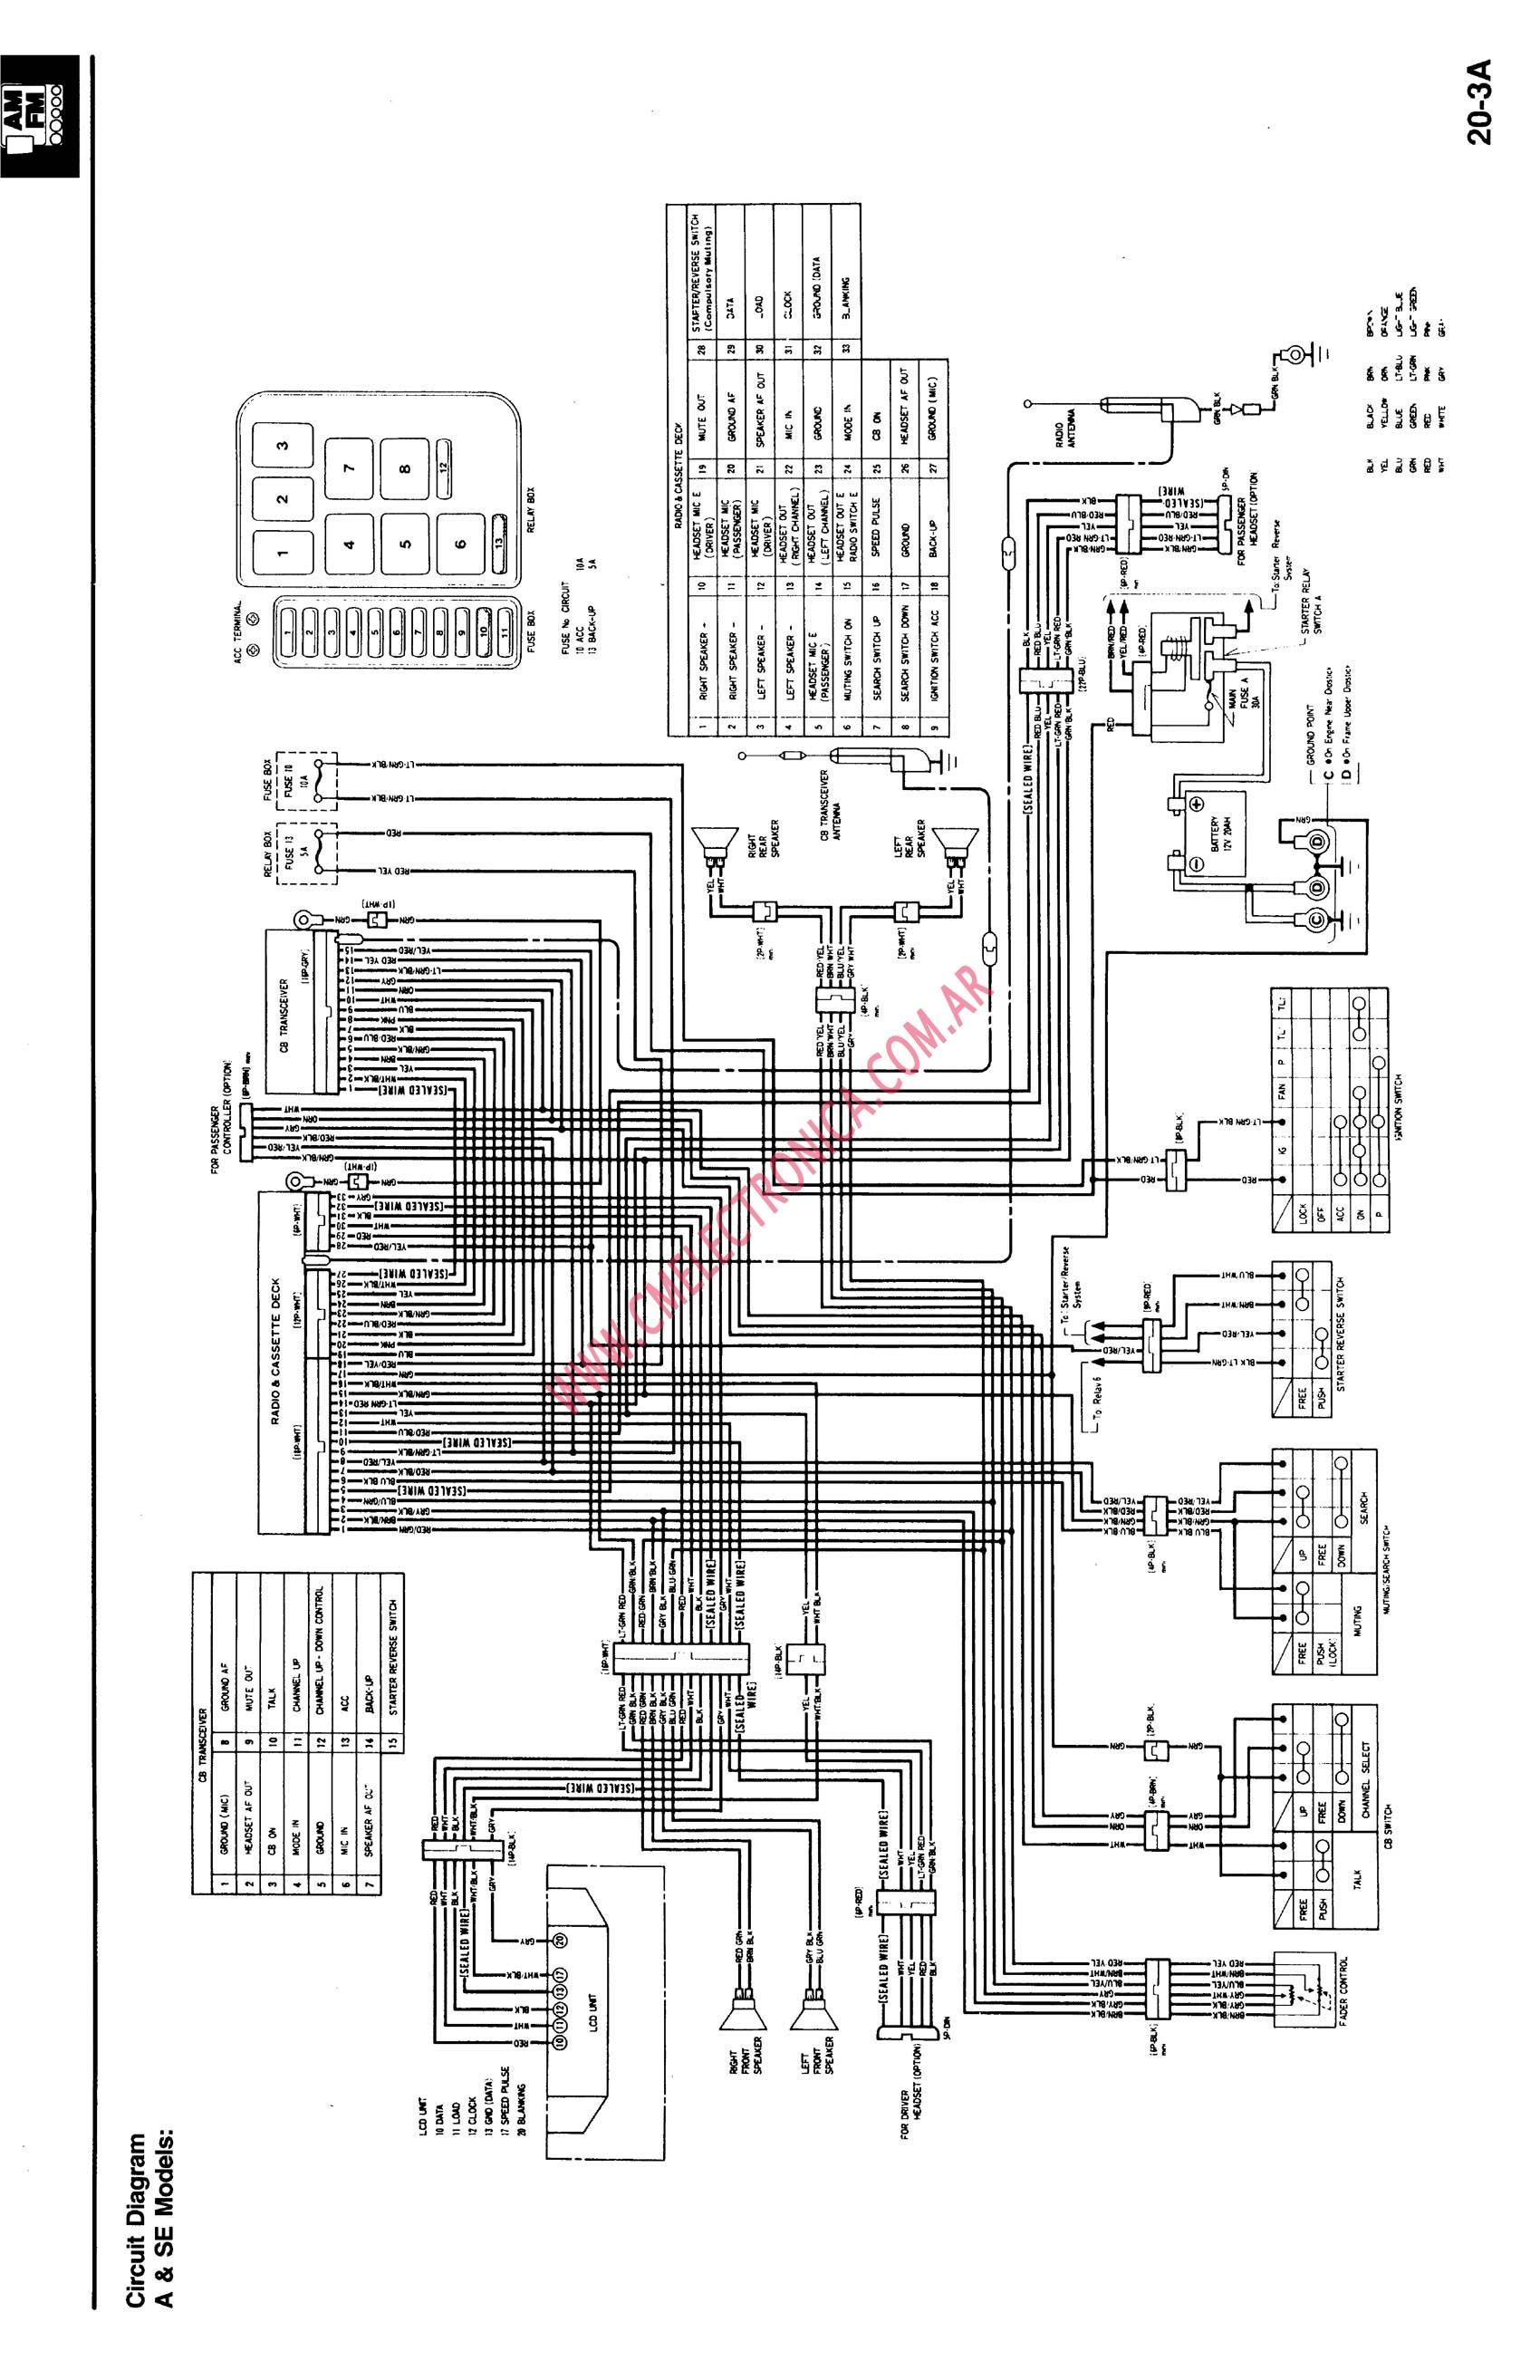 Honda Motorcycle Gl1500 Wiring Diagrams Schematic Crf50 Diagram Lcd Residential Electrical Symbols U2022